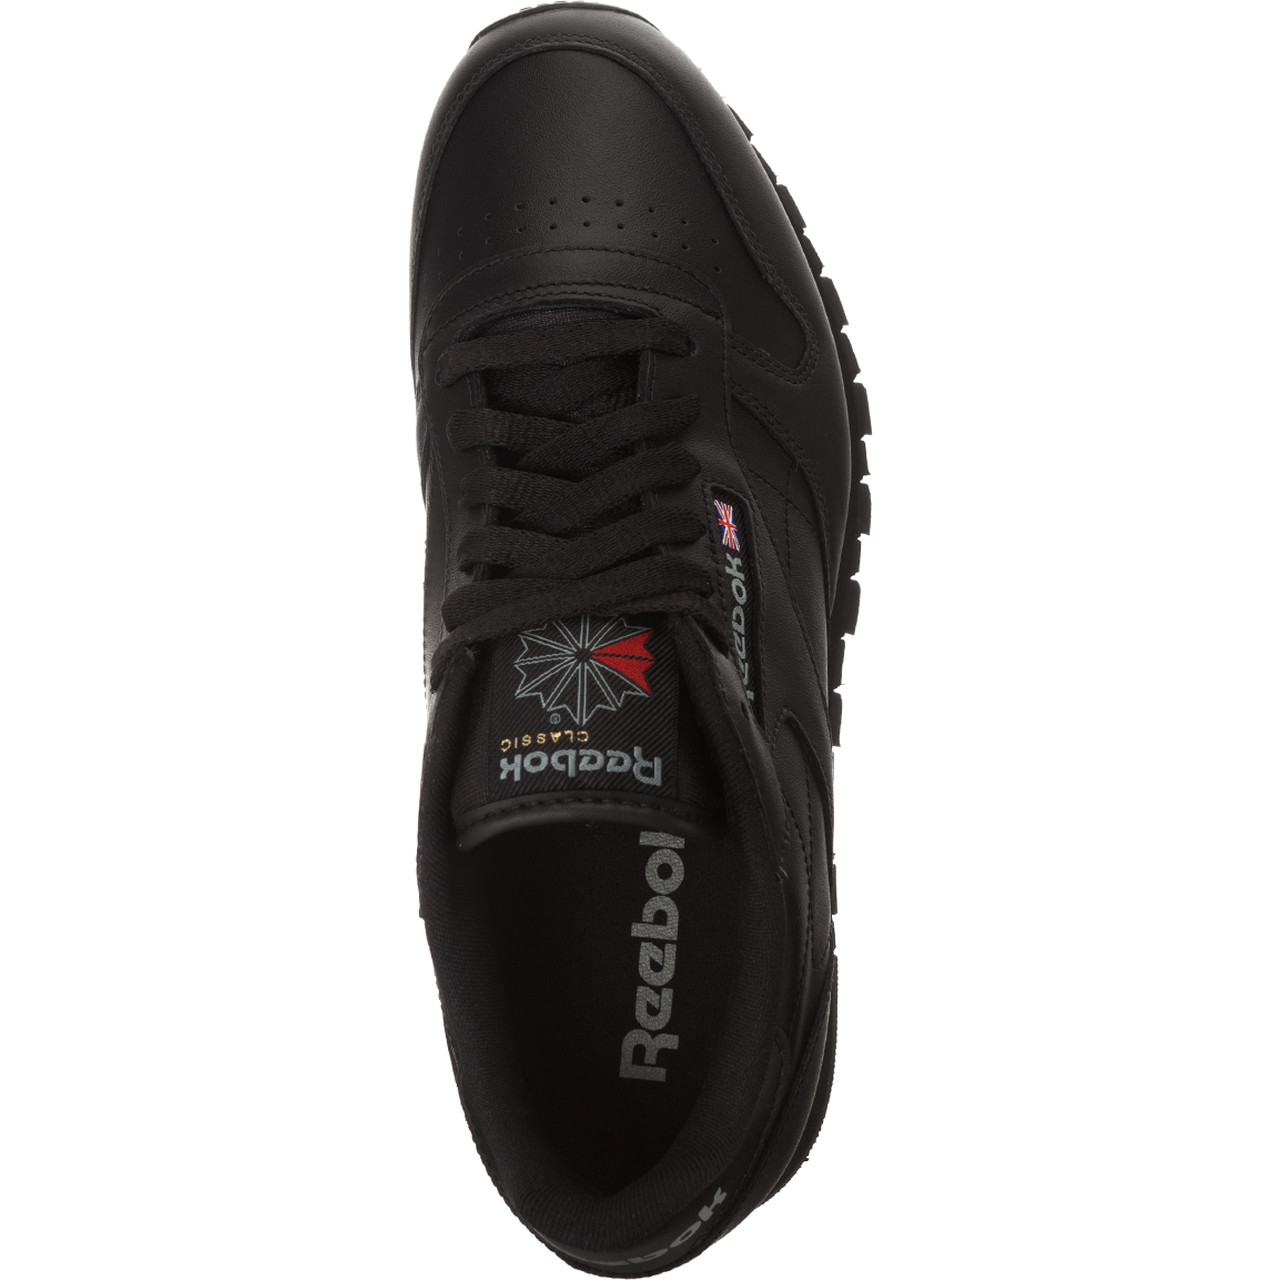 Buty Reebok CL Leather 267 - eastend.pl! 0376c5bc591d